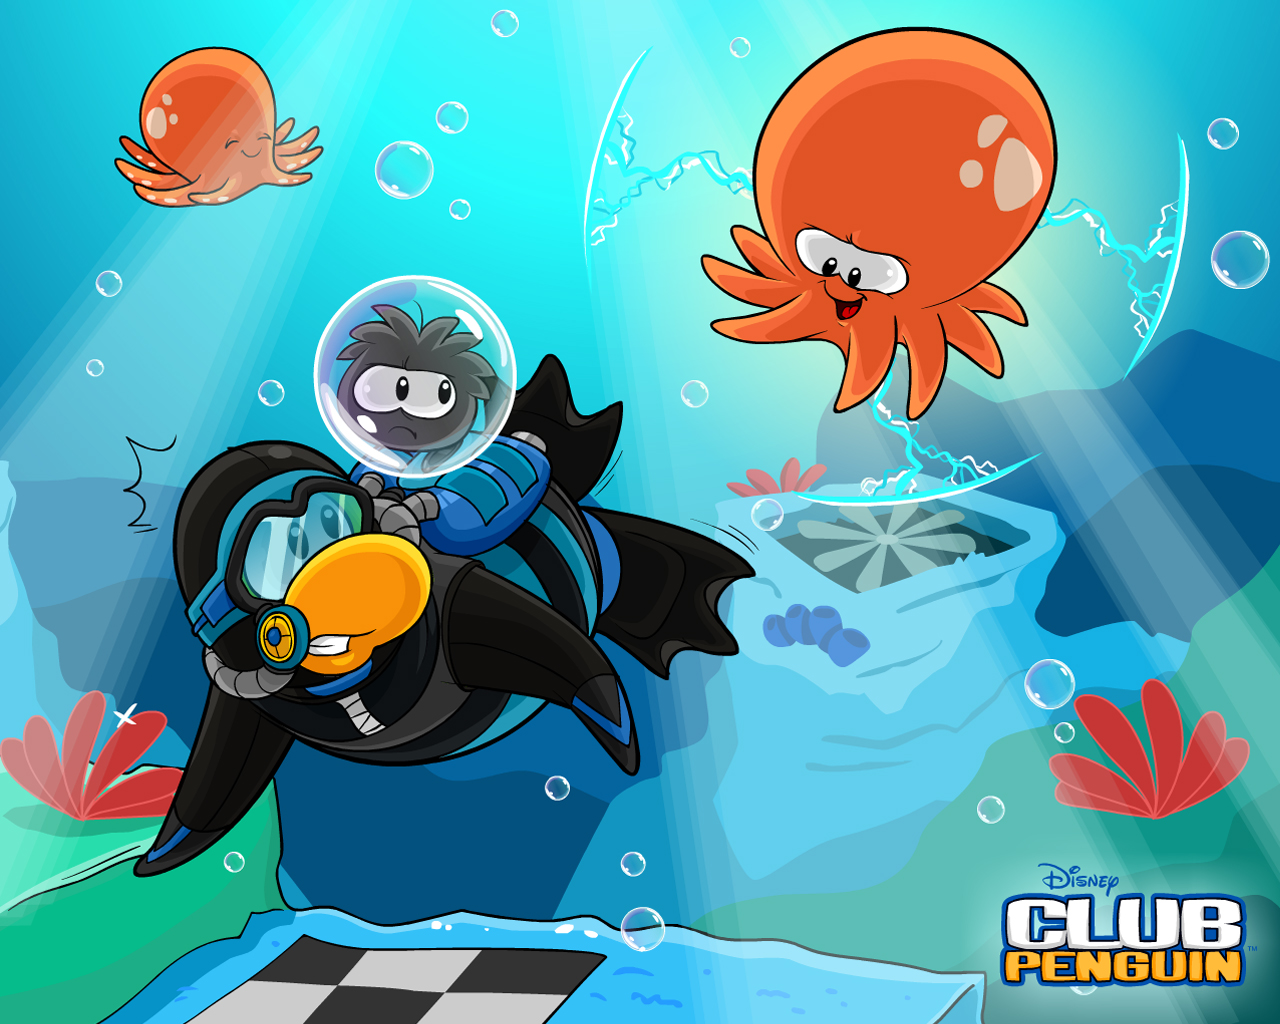 New Club Penguin Wallpaper